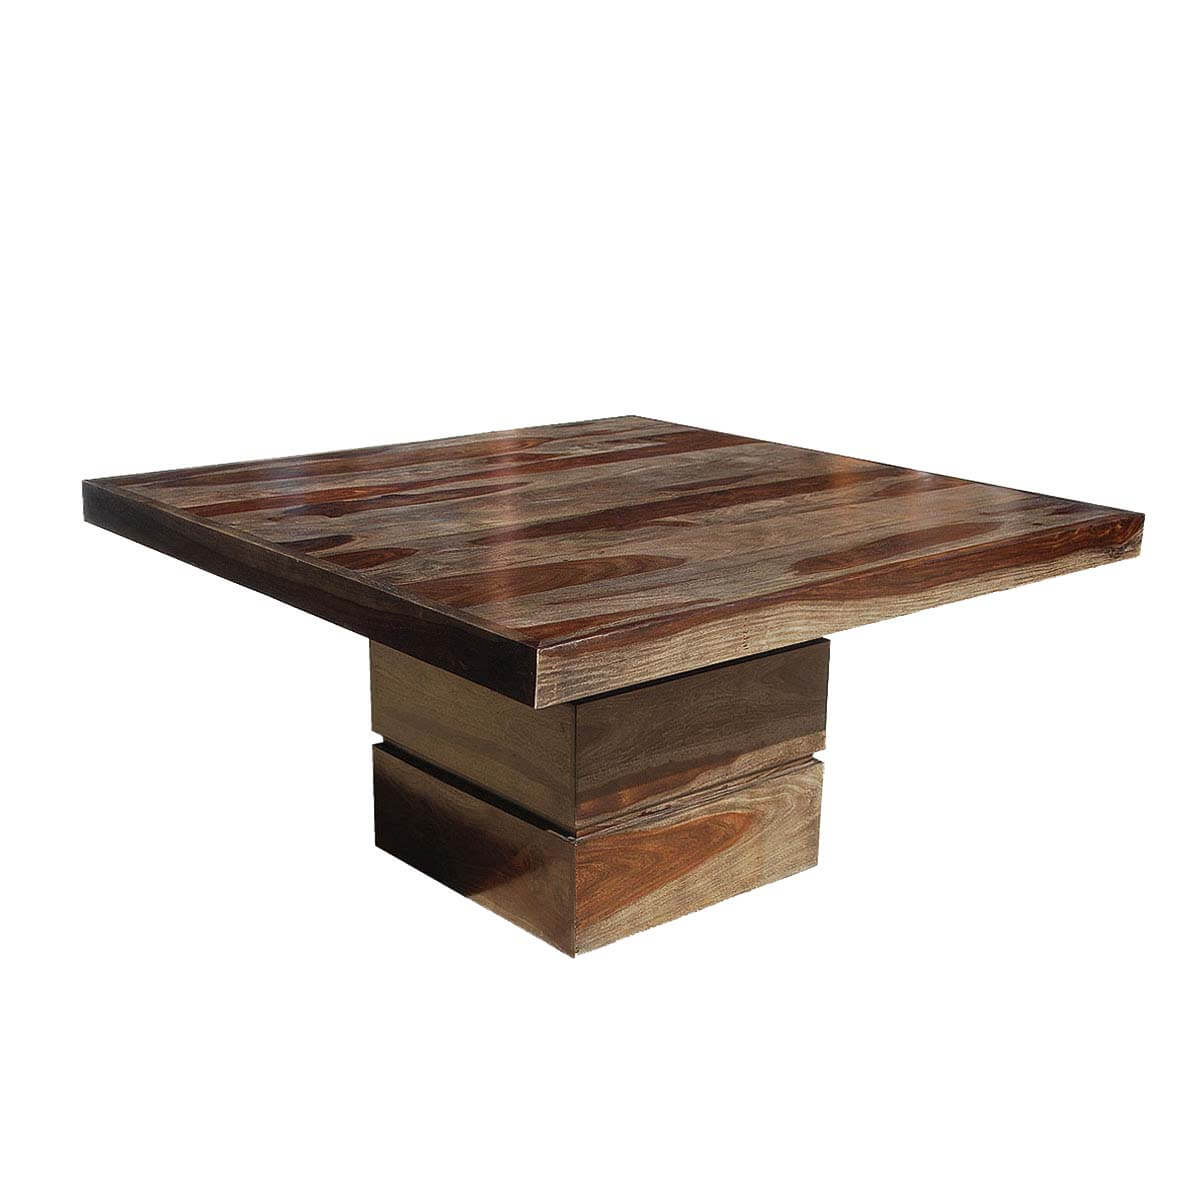 Tables rustic solid wood trestle pedestal base harvest dining table - Dallas Modern Solid Wood 48 Square Pedestal Dining Table